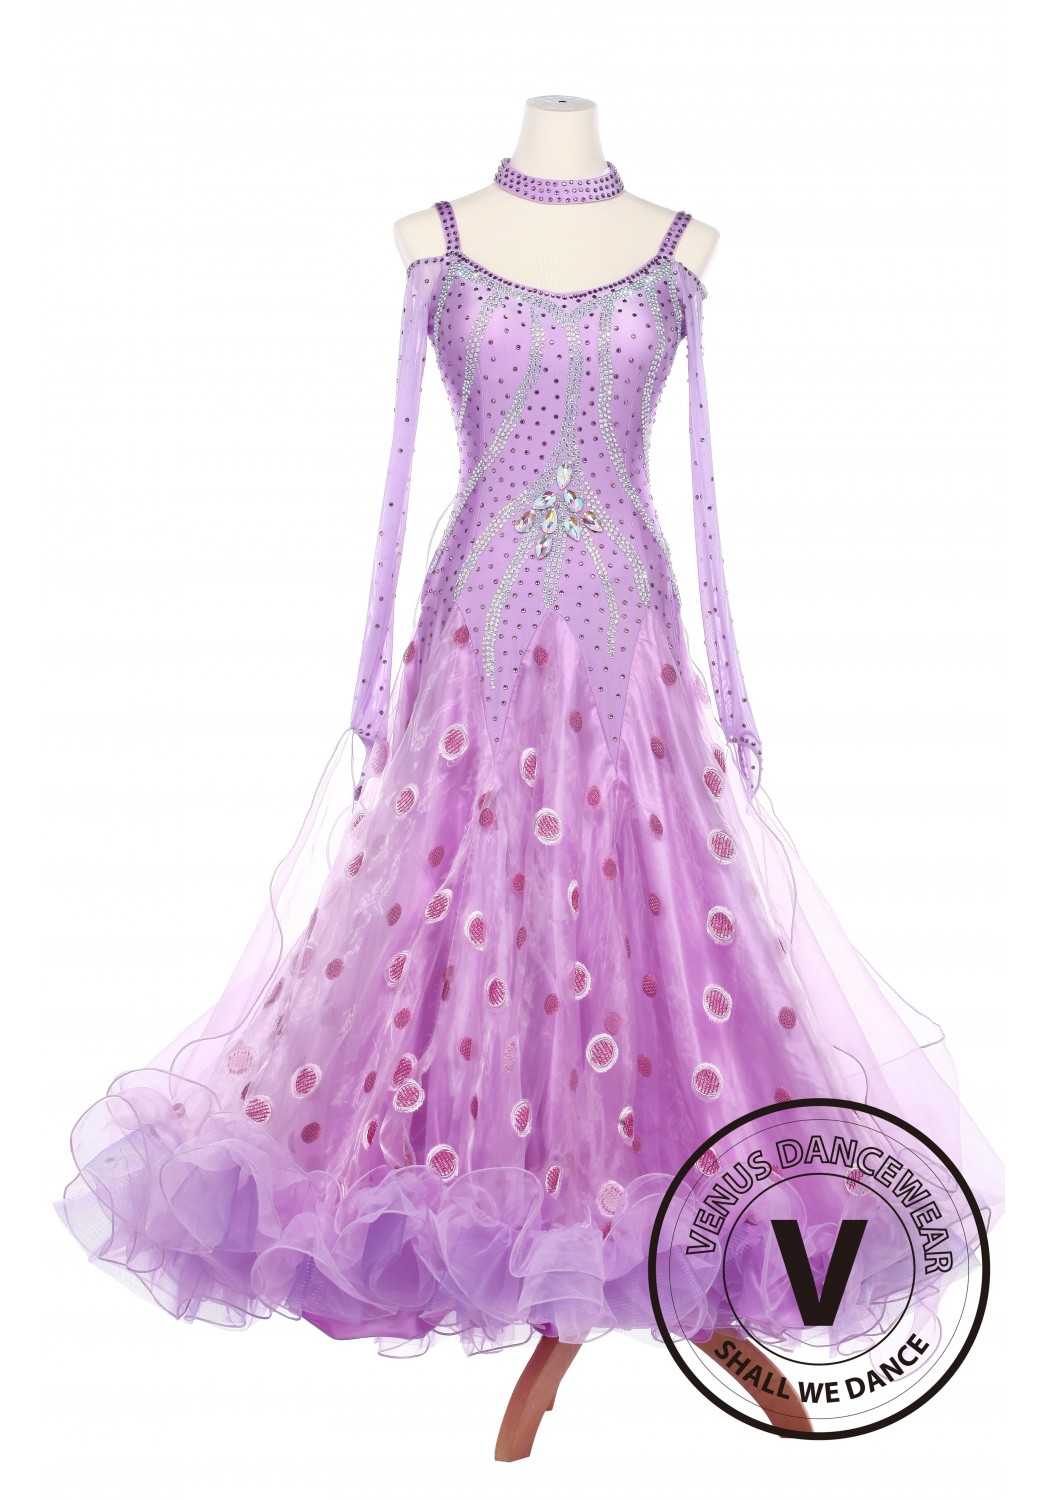 Lavender Fairy Smooth Foxtrot Waltz Ballroom Standard Competition Women Dress